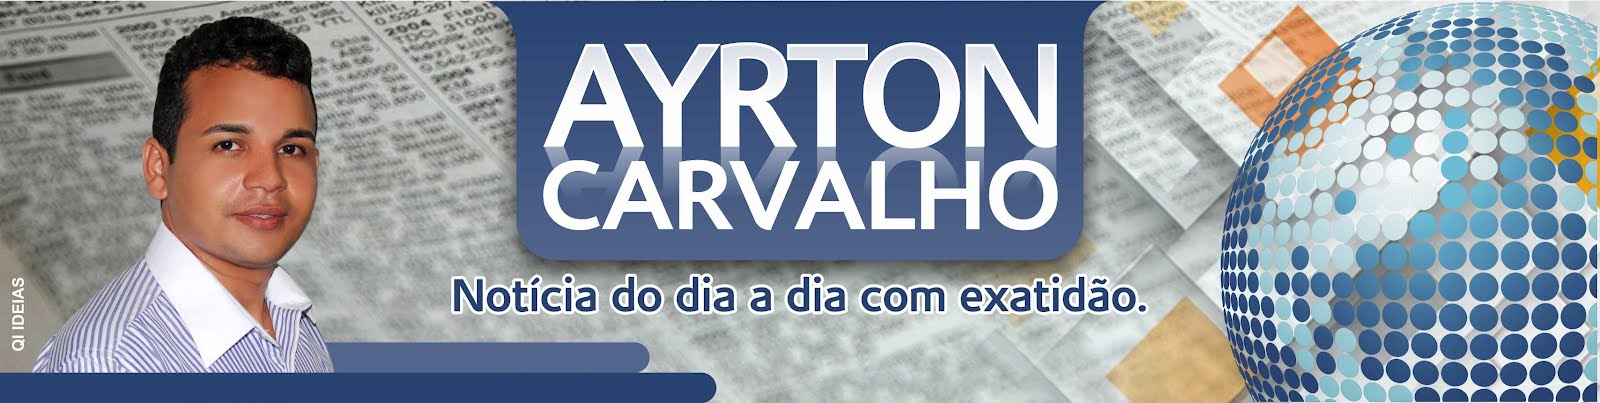 Blog do Ayrton Carvalho